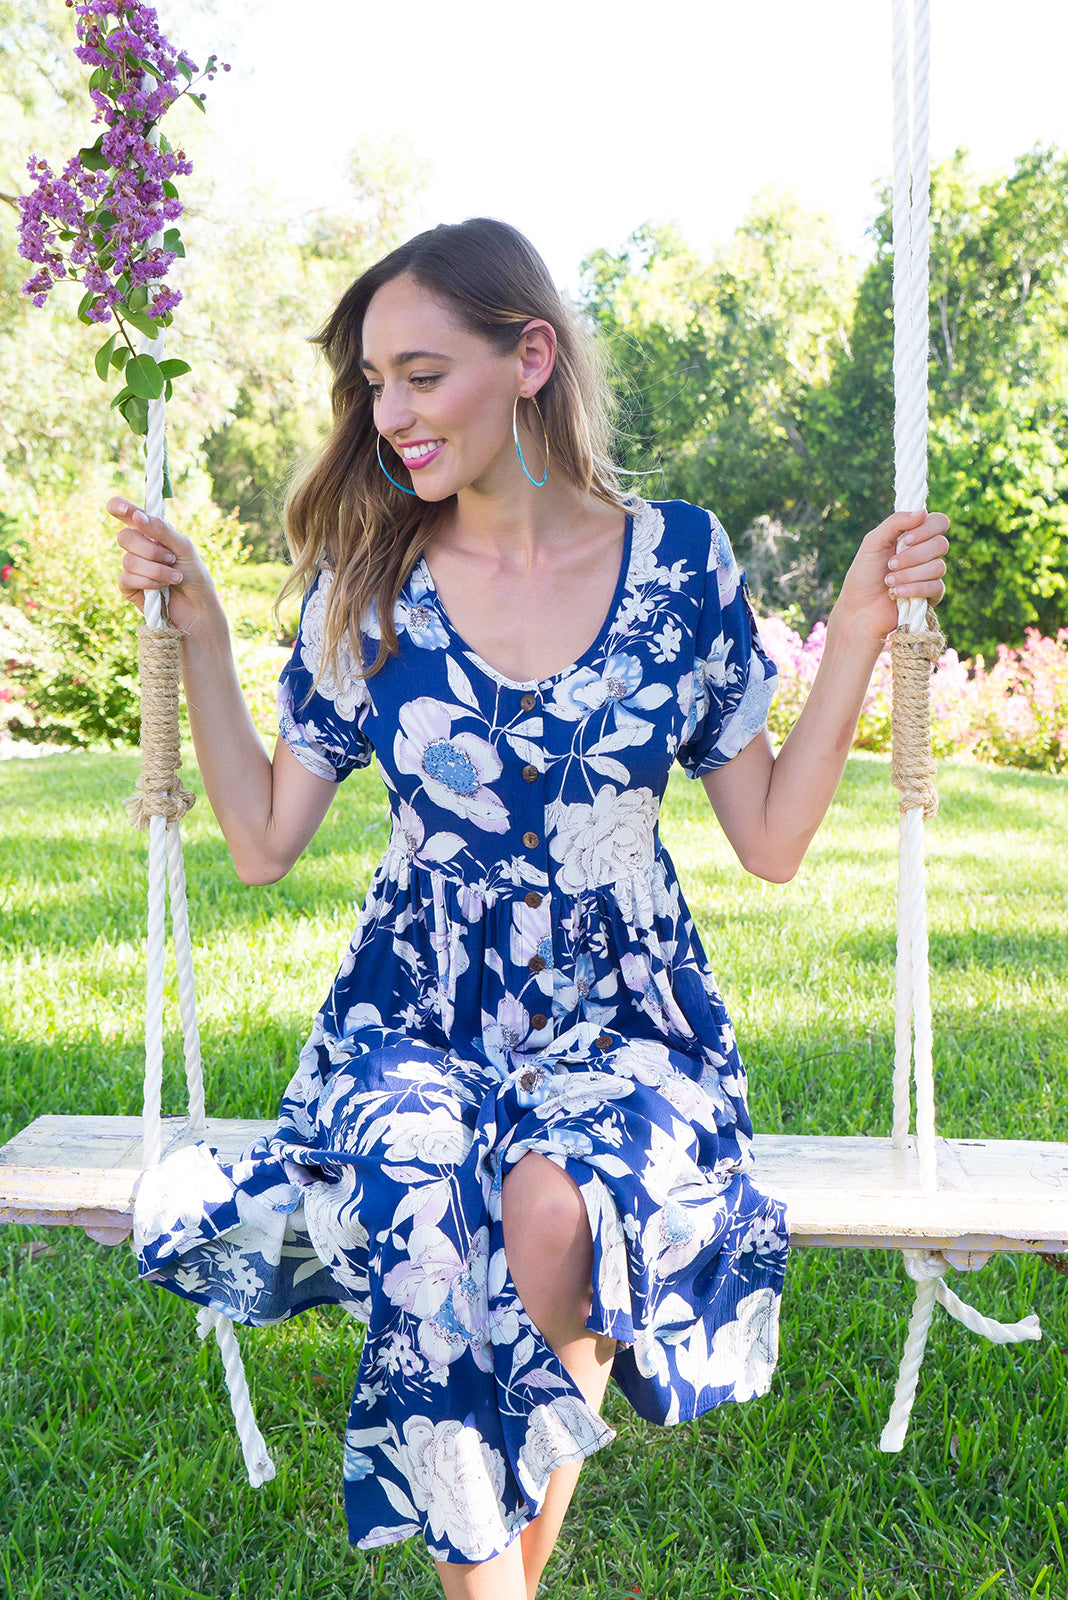 Rocco Nicky Navy button front maxi dress in bright navy floral print on crinkled rayon fabric